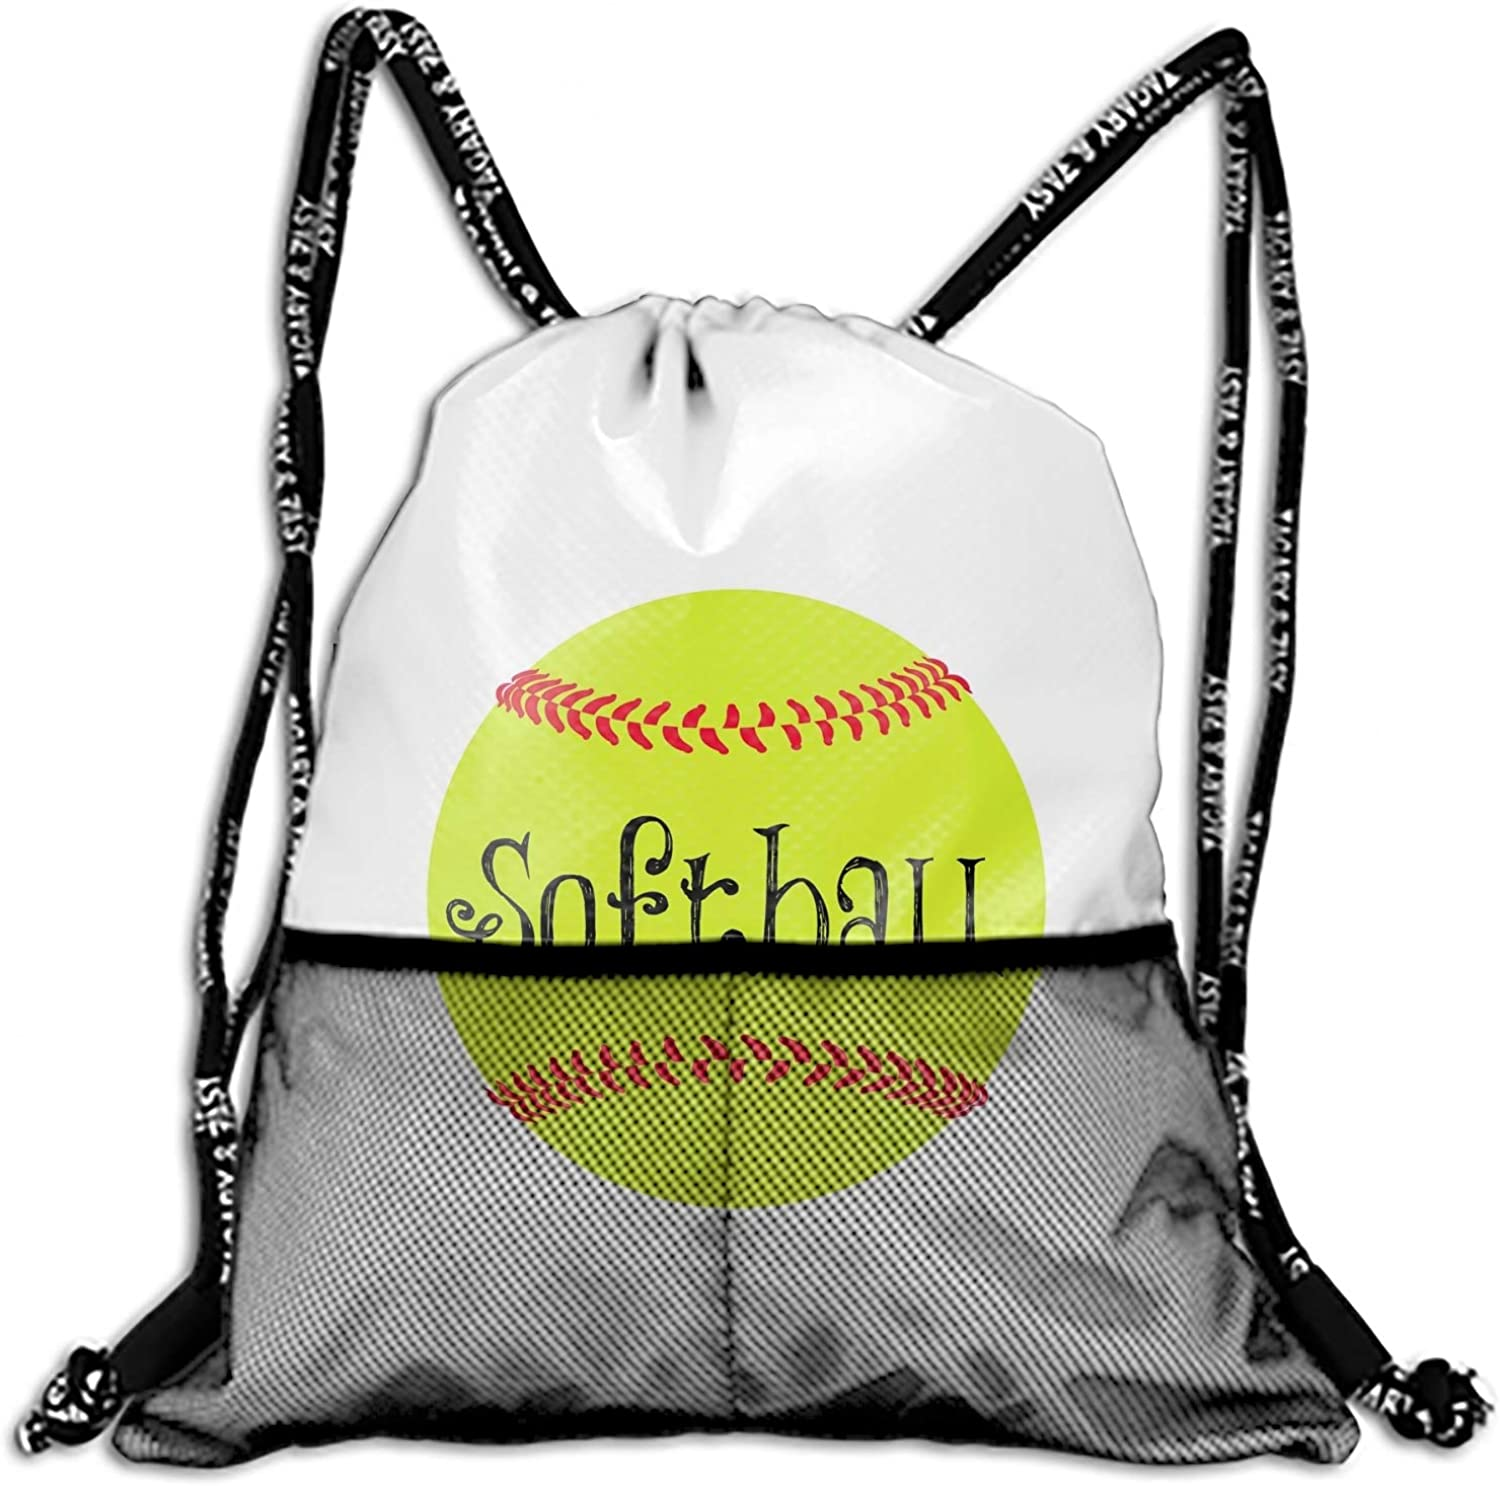 e51c342f090ef Drawstring Backpack Bag Yellow Softball Cinch Sack Backpack String ...